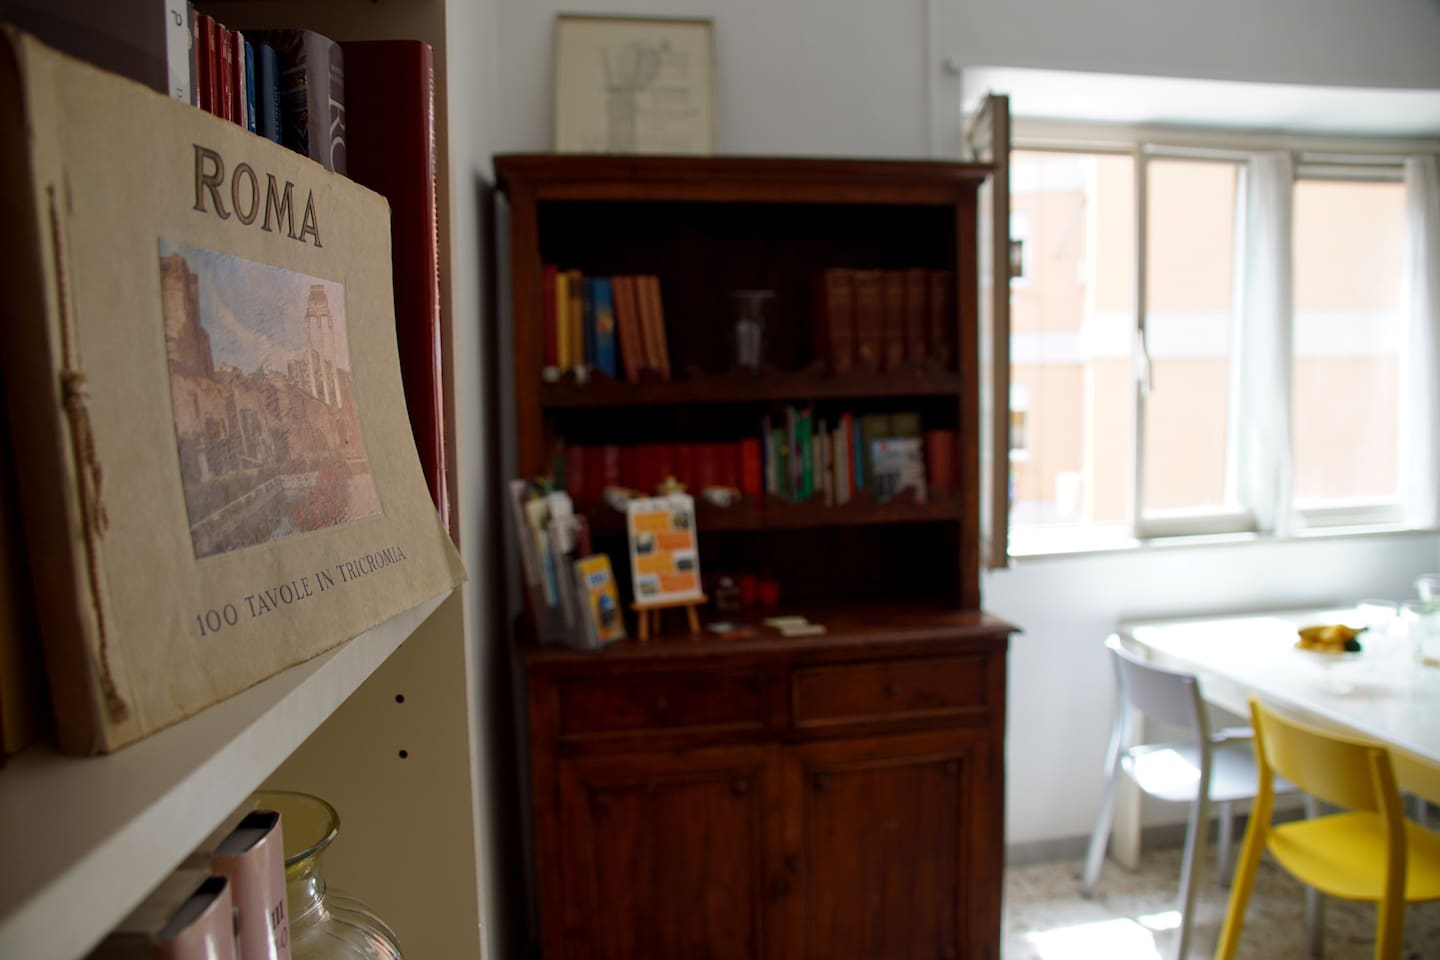 Living room, with a whole bookcase full of books on Rome to help orient your trip and learn about this city's amazing history